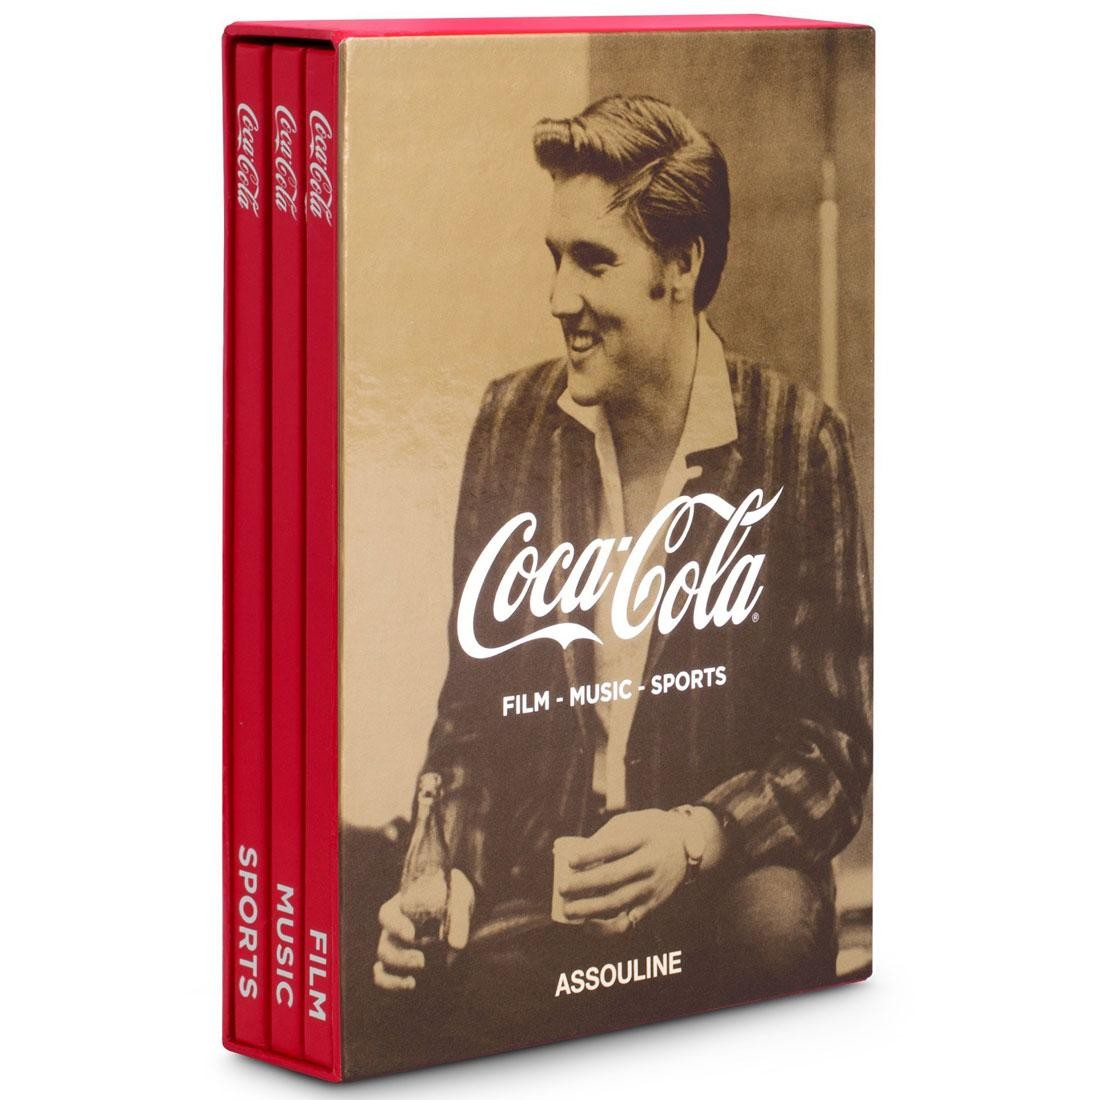 Coca Cola: Film Music Sports Book By Assouline (red / hardcover)